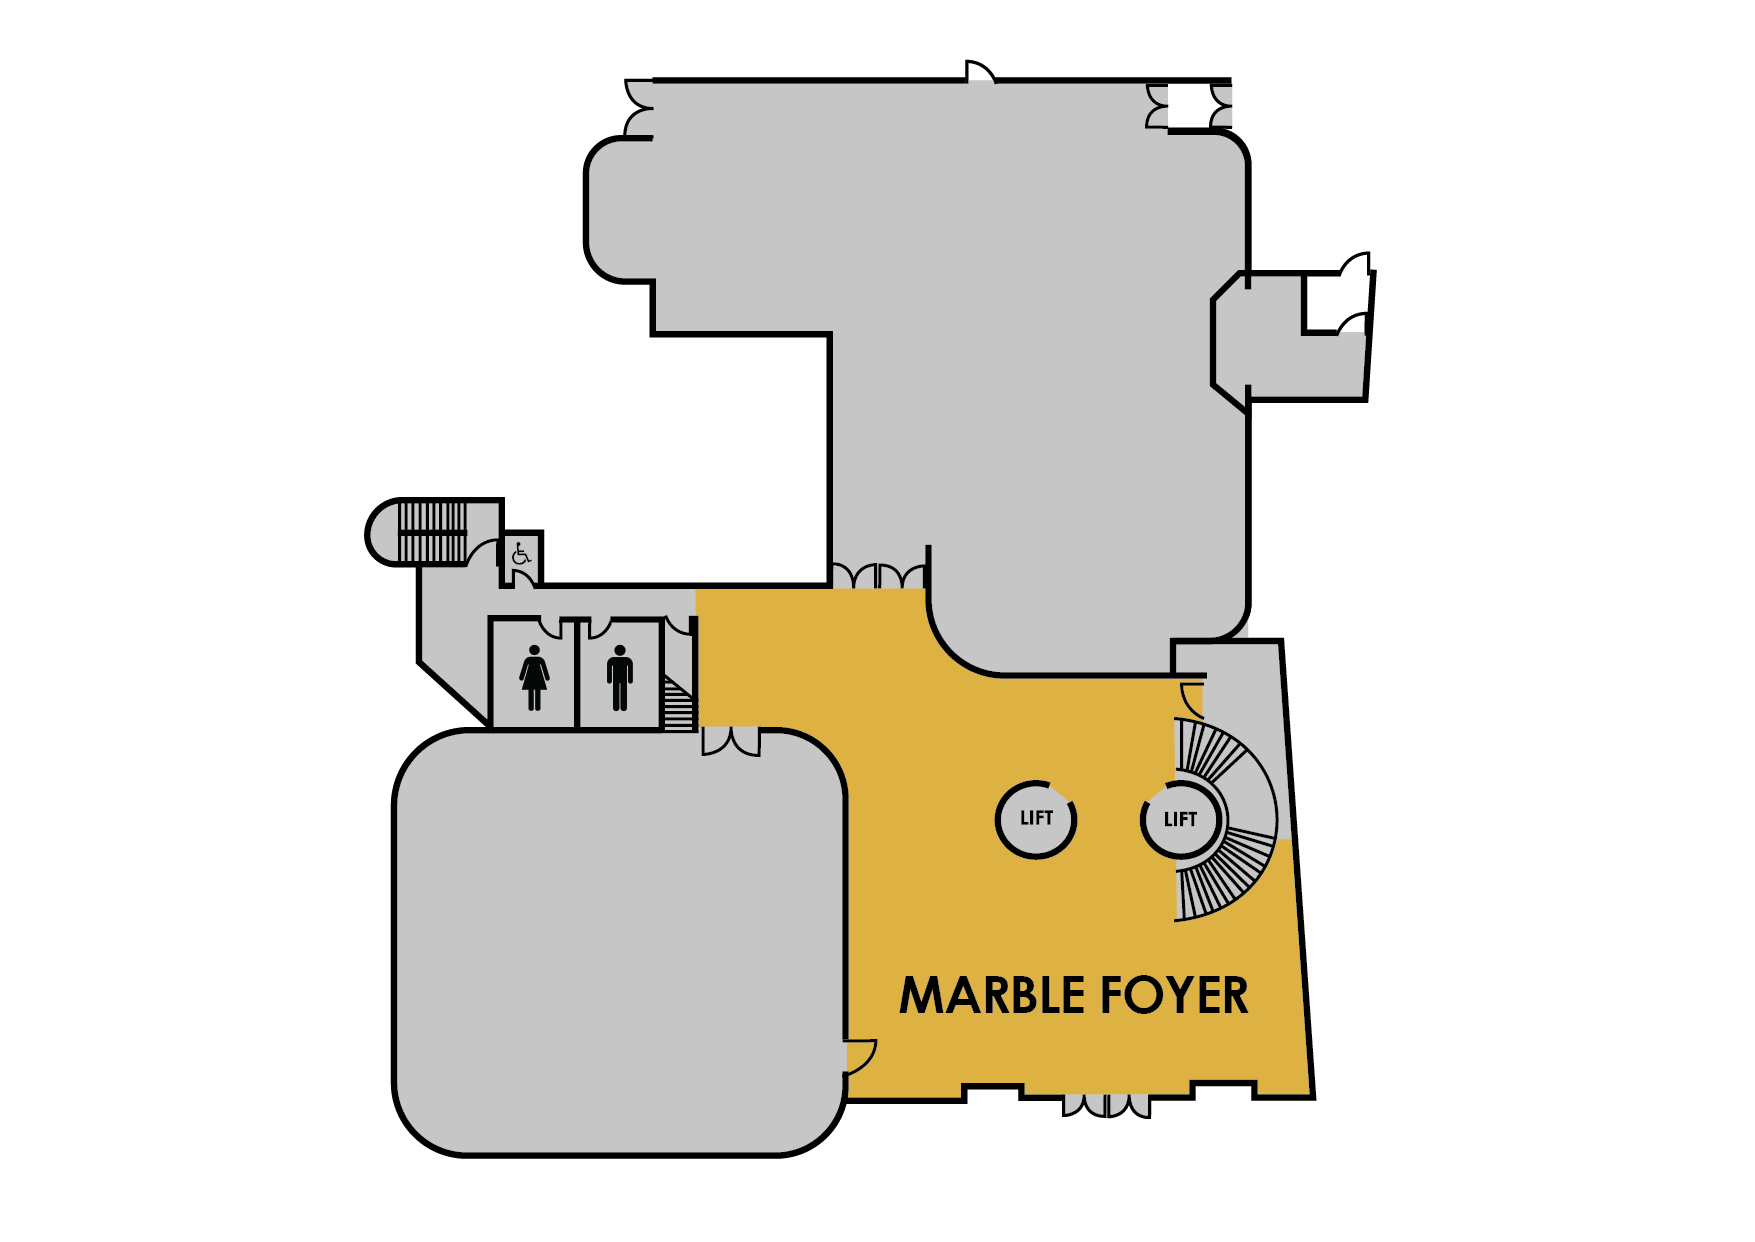 Marble Foyer map